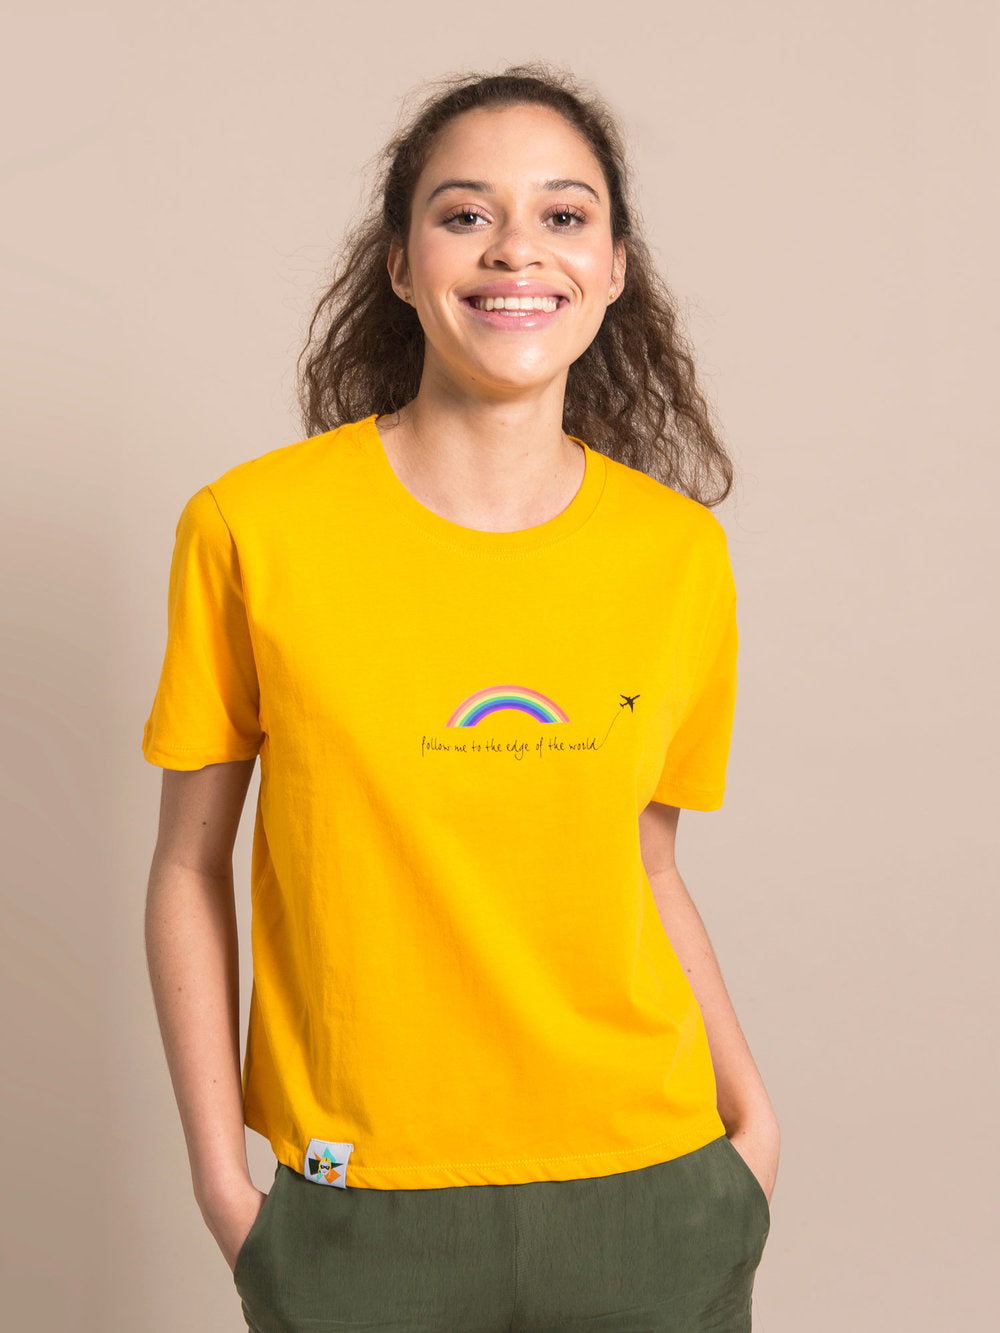 Woman wearing a yellow organic cotton tee with print